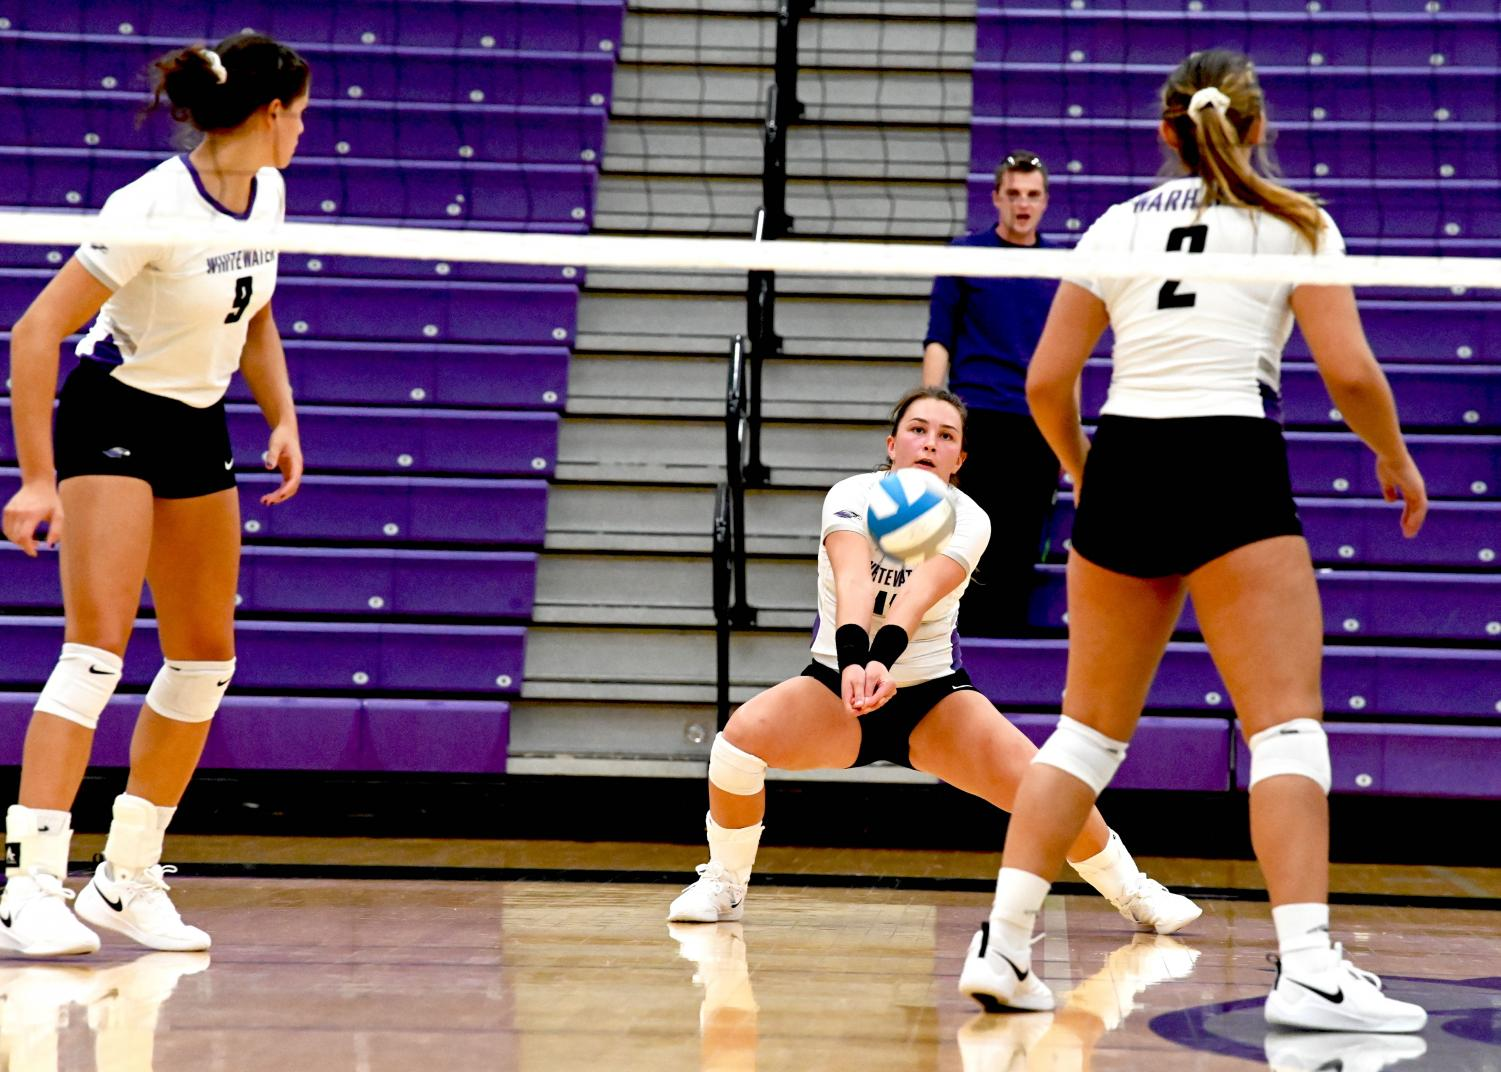 University of Wisconsin-Whitewater Warhawk Volleyball continues its winning streak by fighting to the end of every match.